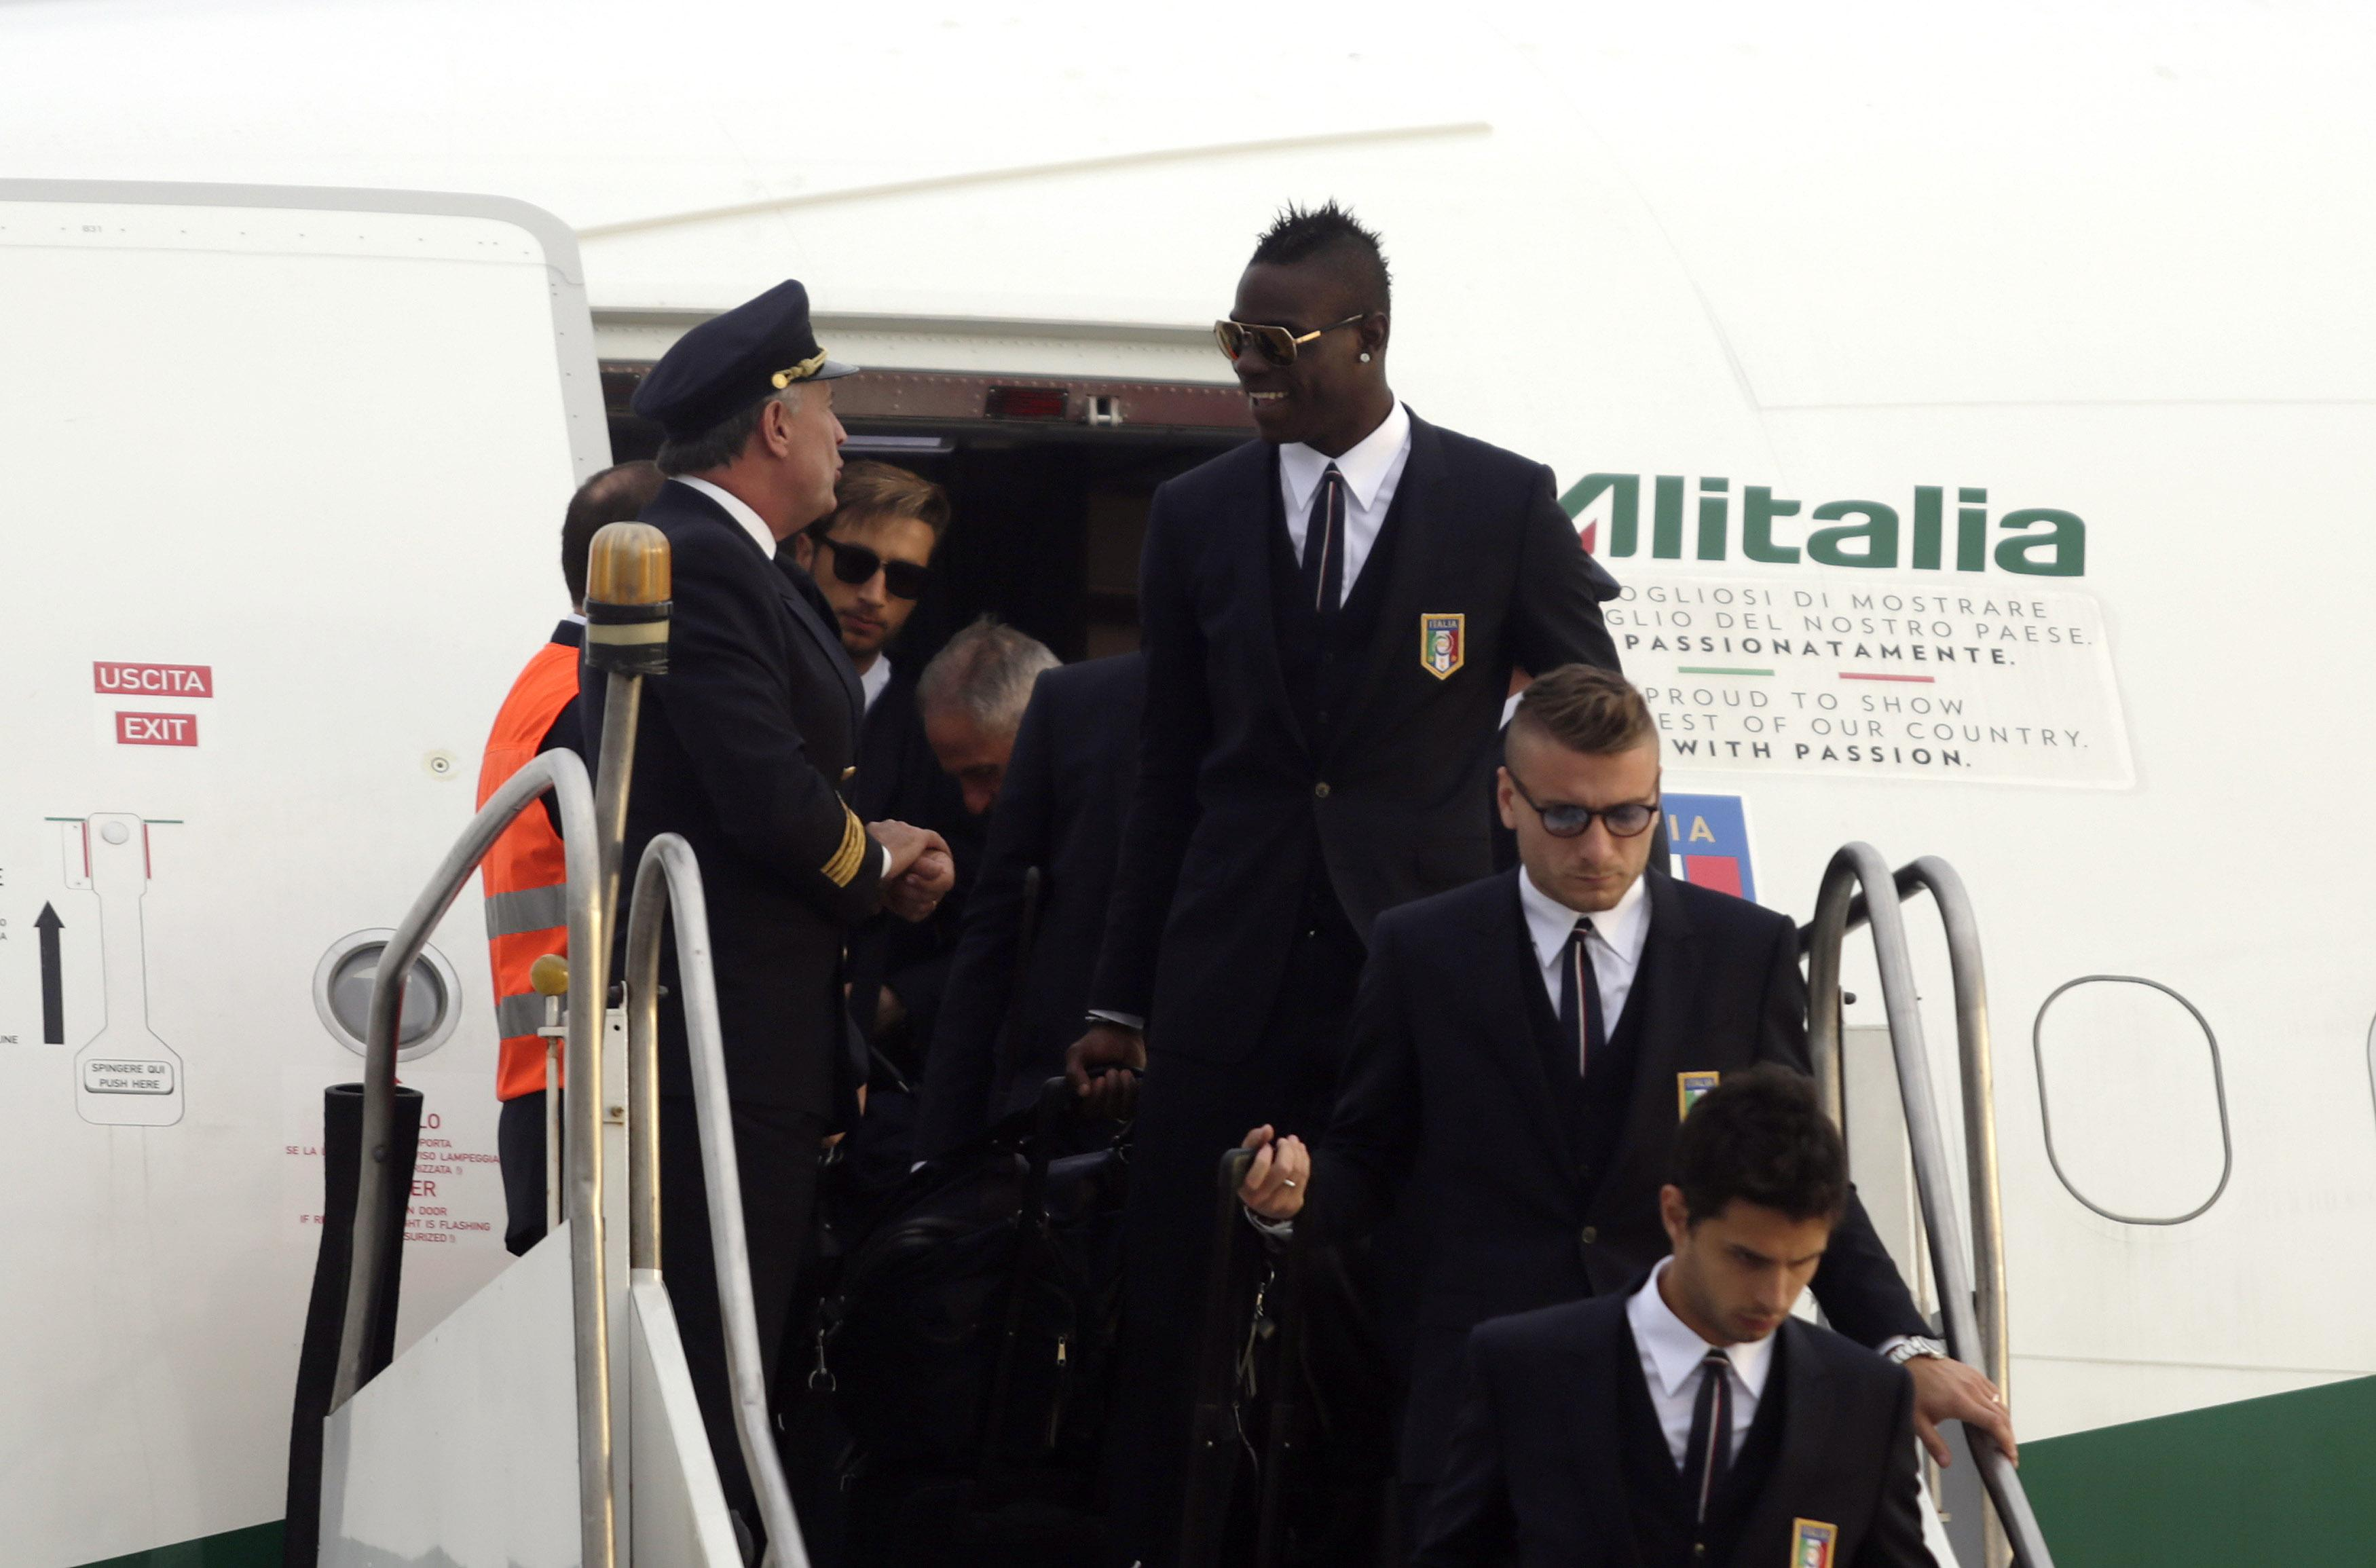 2014 World Cup - Italy Arrival